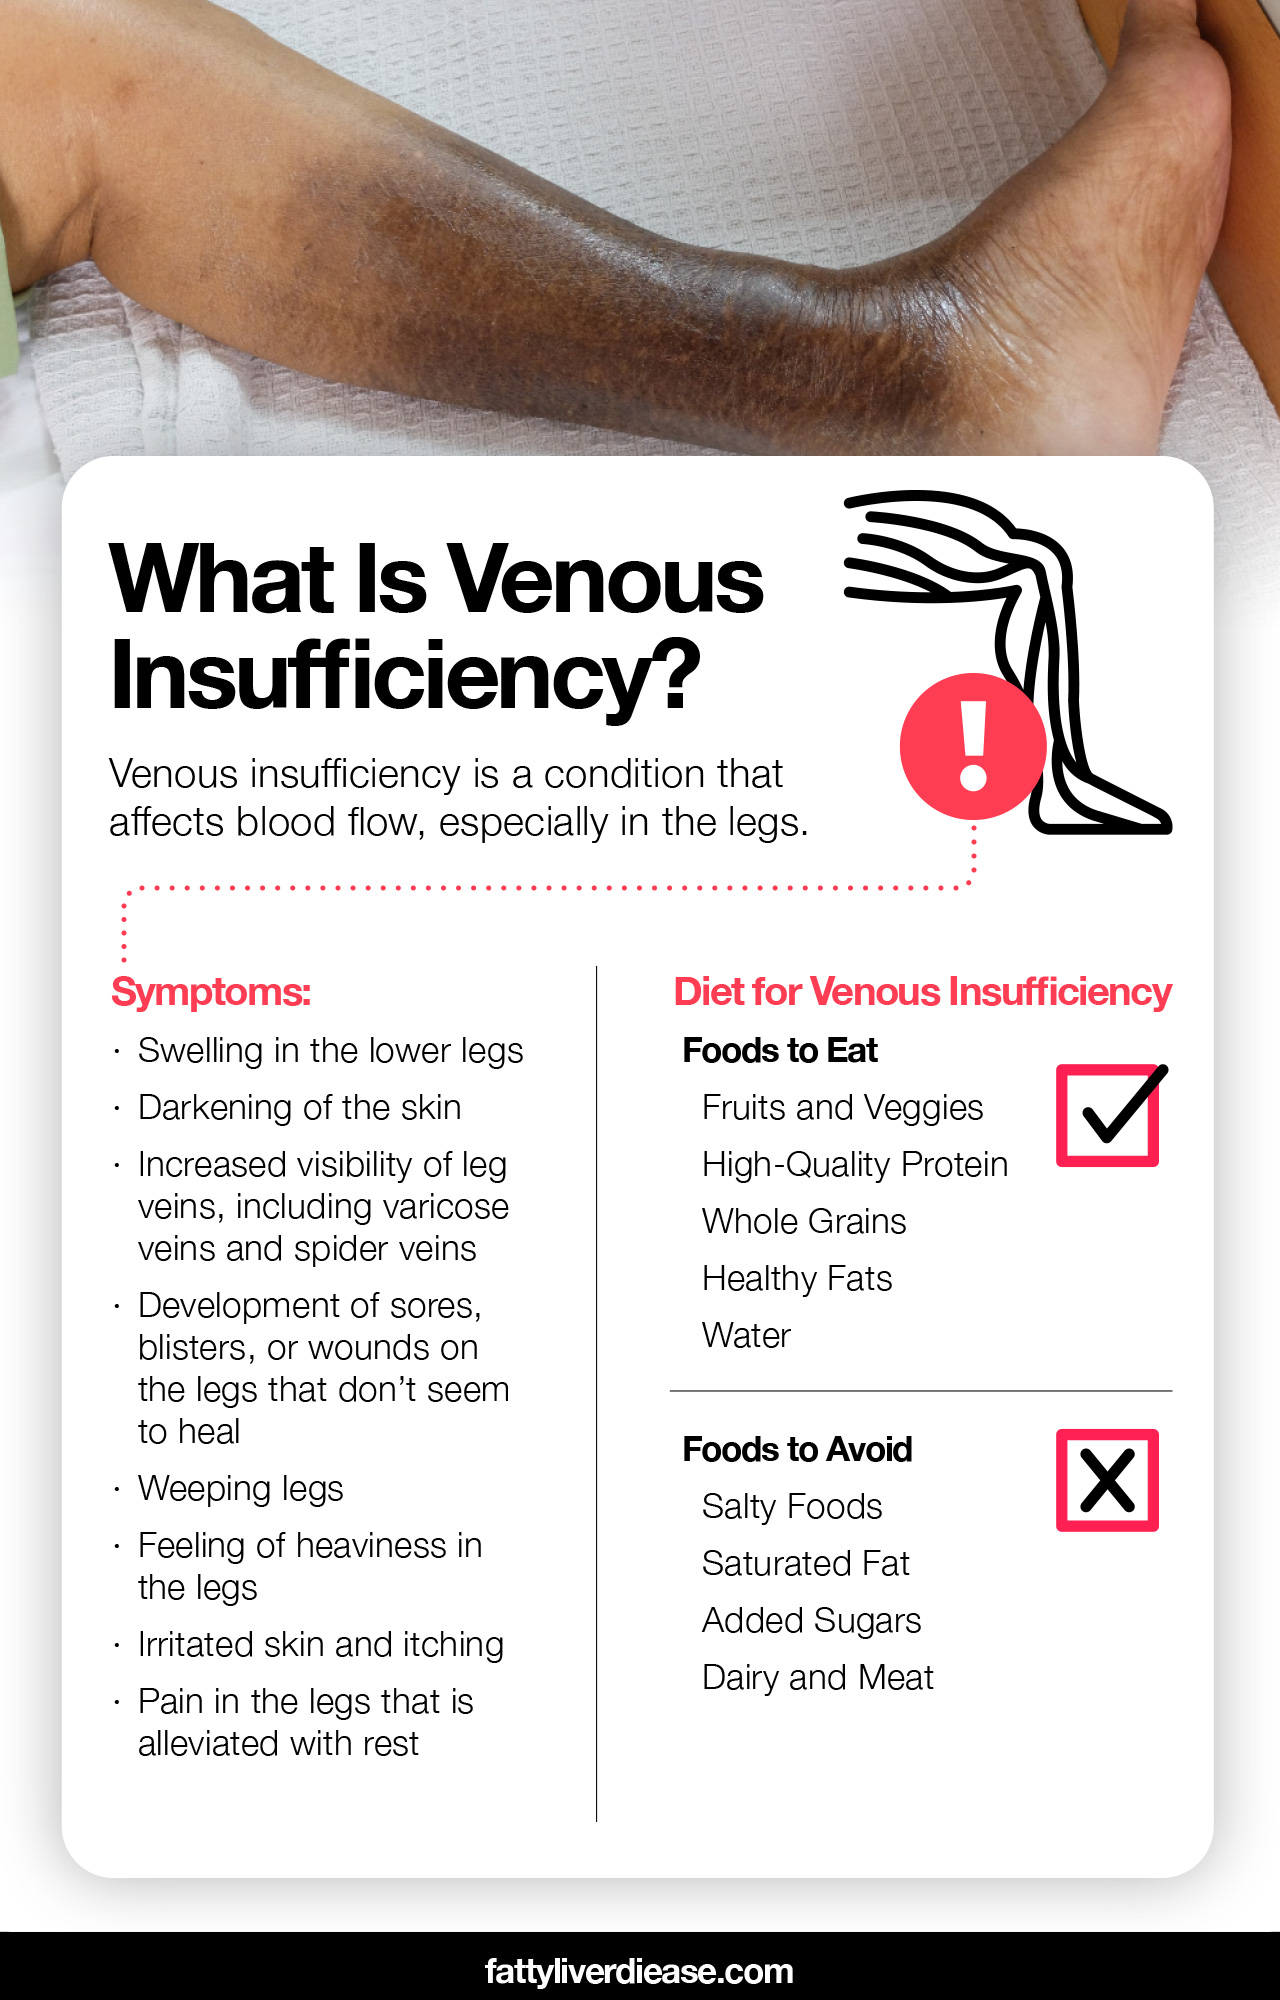 Diet for Venous Insufficiency: How to Manage Venous Insufficiency